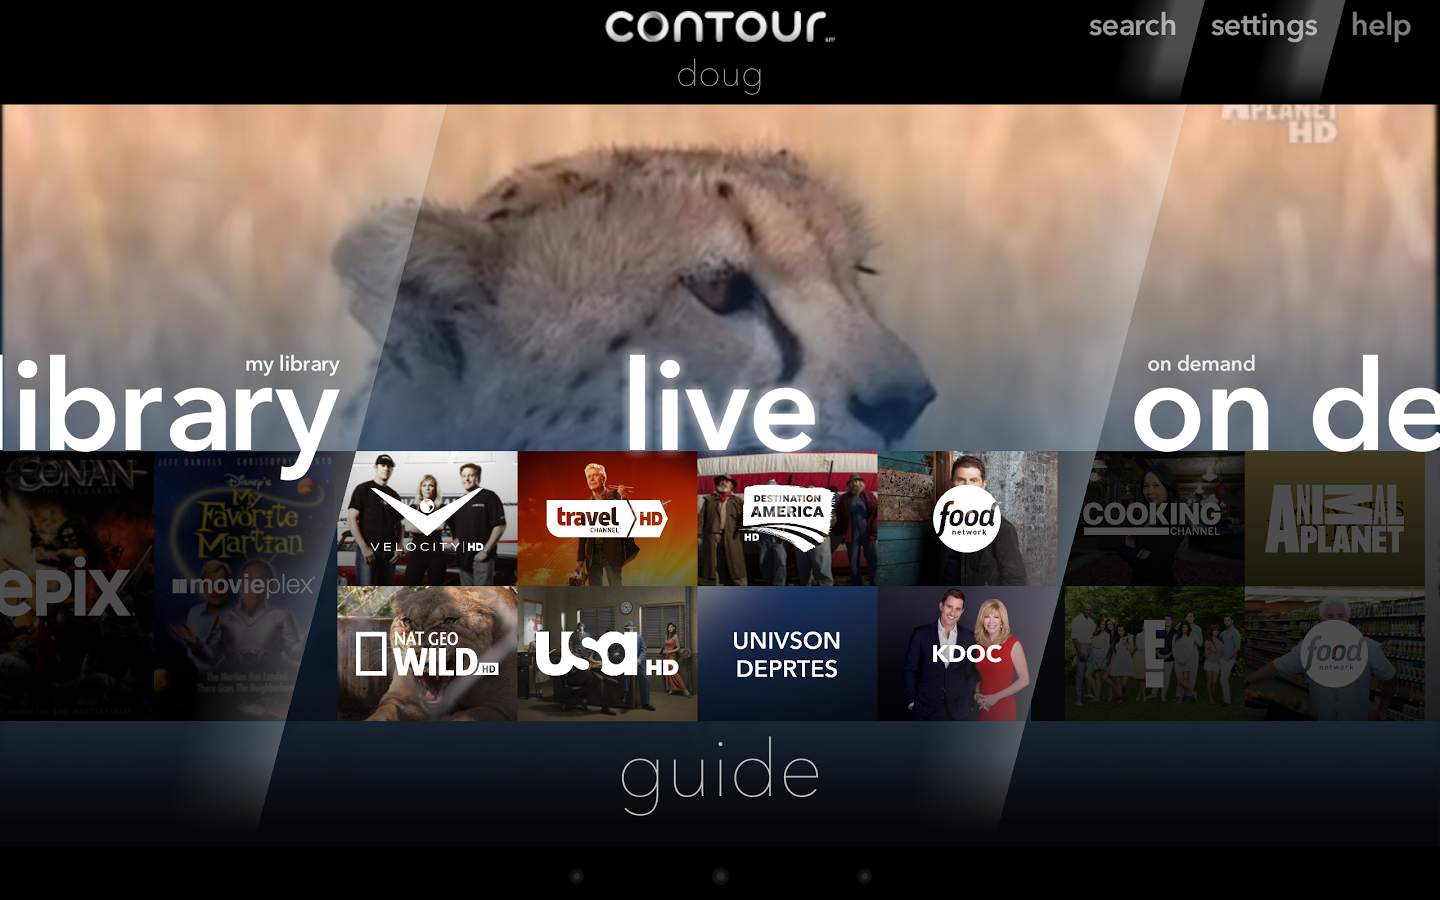 New App] Cox Contour Comes To Android, Provides Subscribers With 100